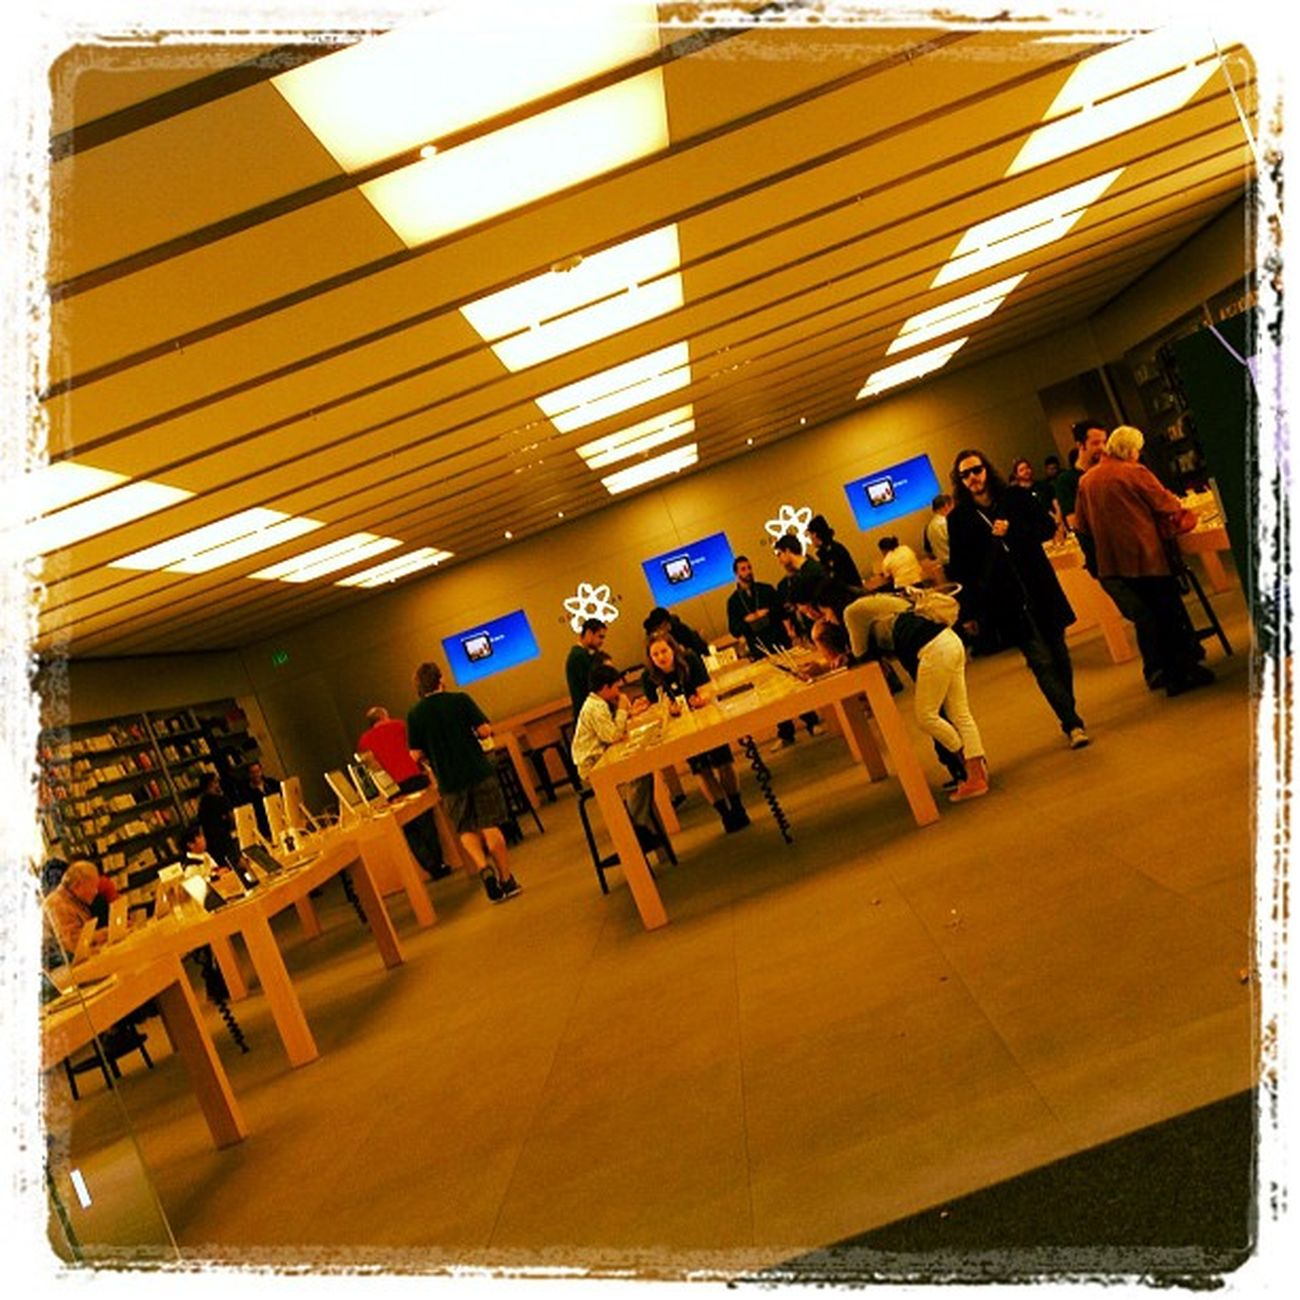 Playing with IOS iPhoto. #bethesda #iphoneography #jomo #bethesdarow IPhoneography Apple Bethesda Applestore Jomo Bethesdarow R112